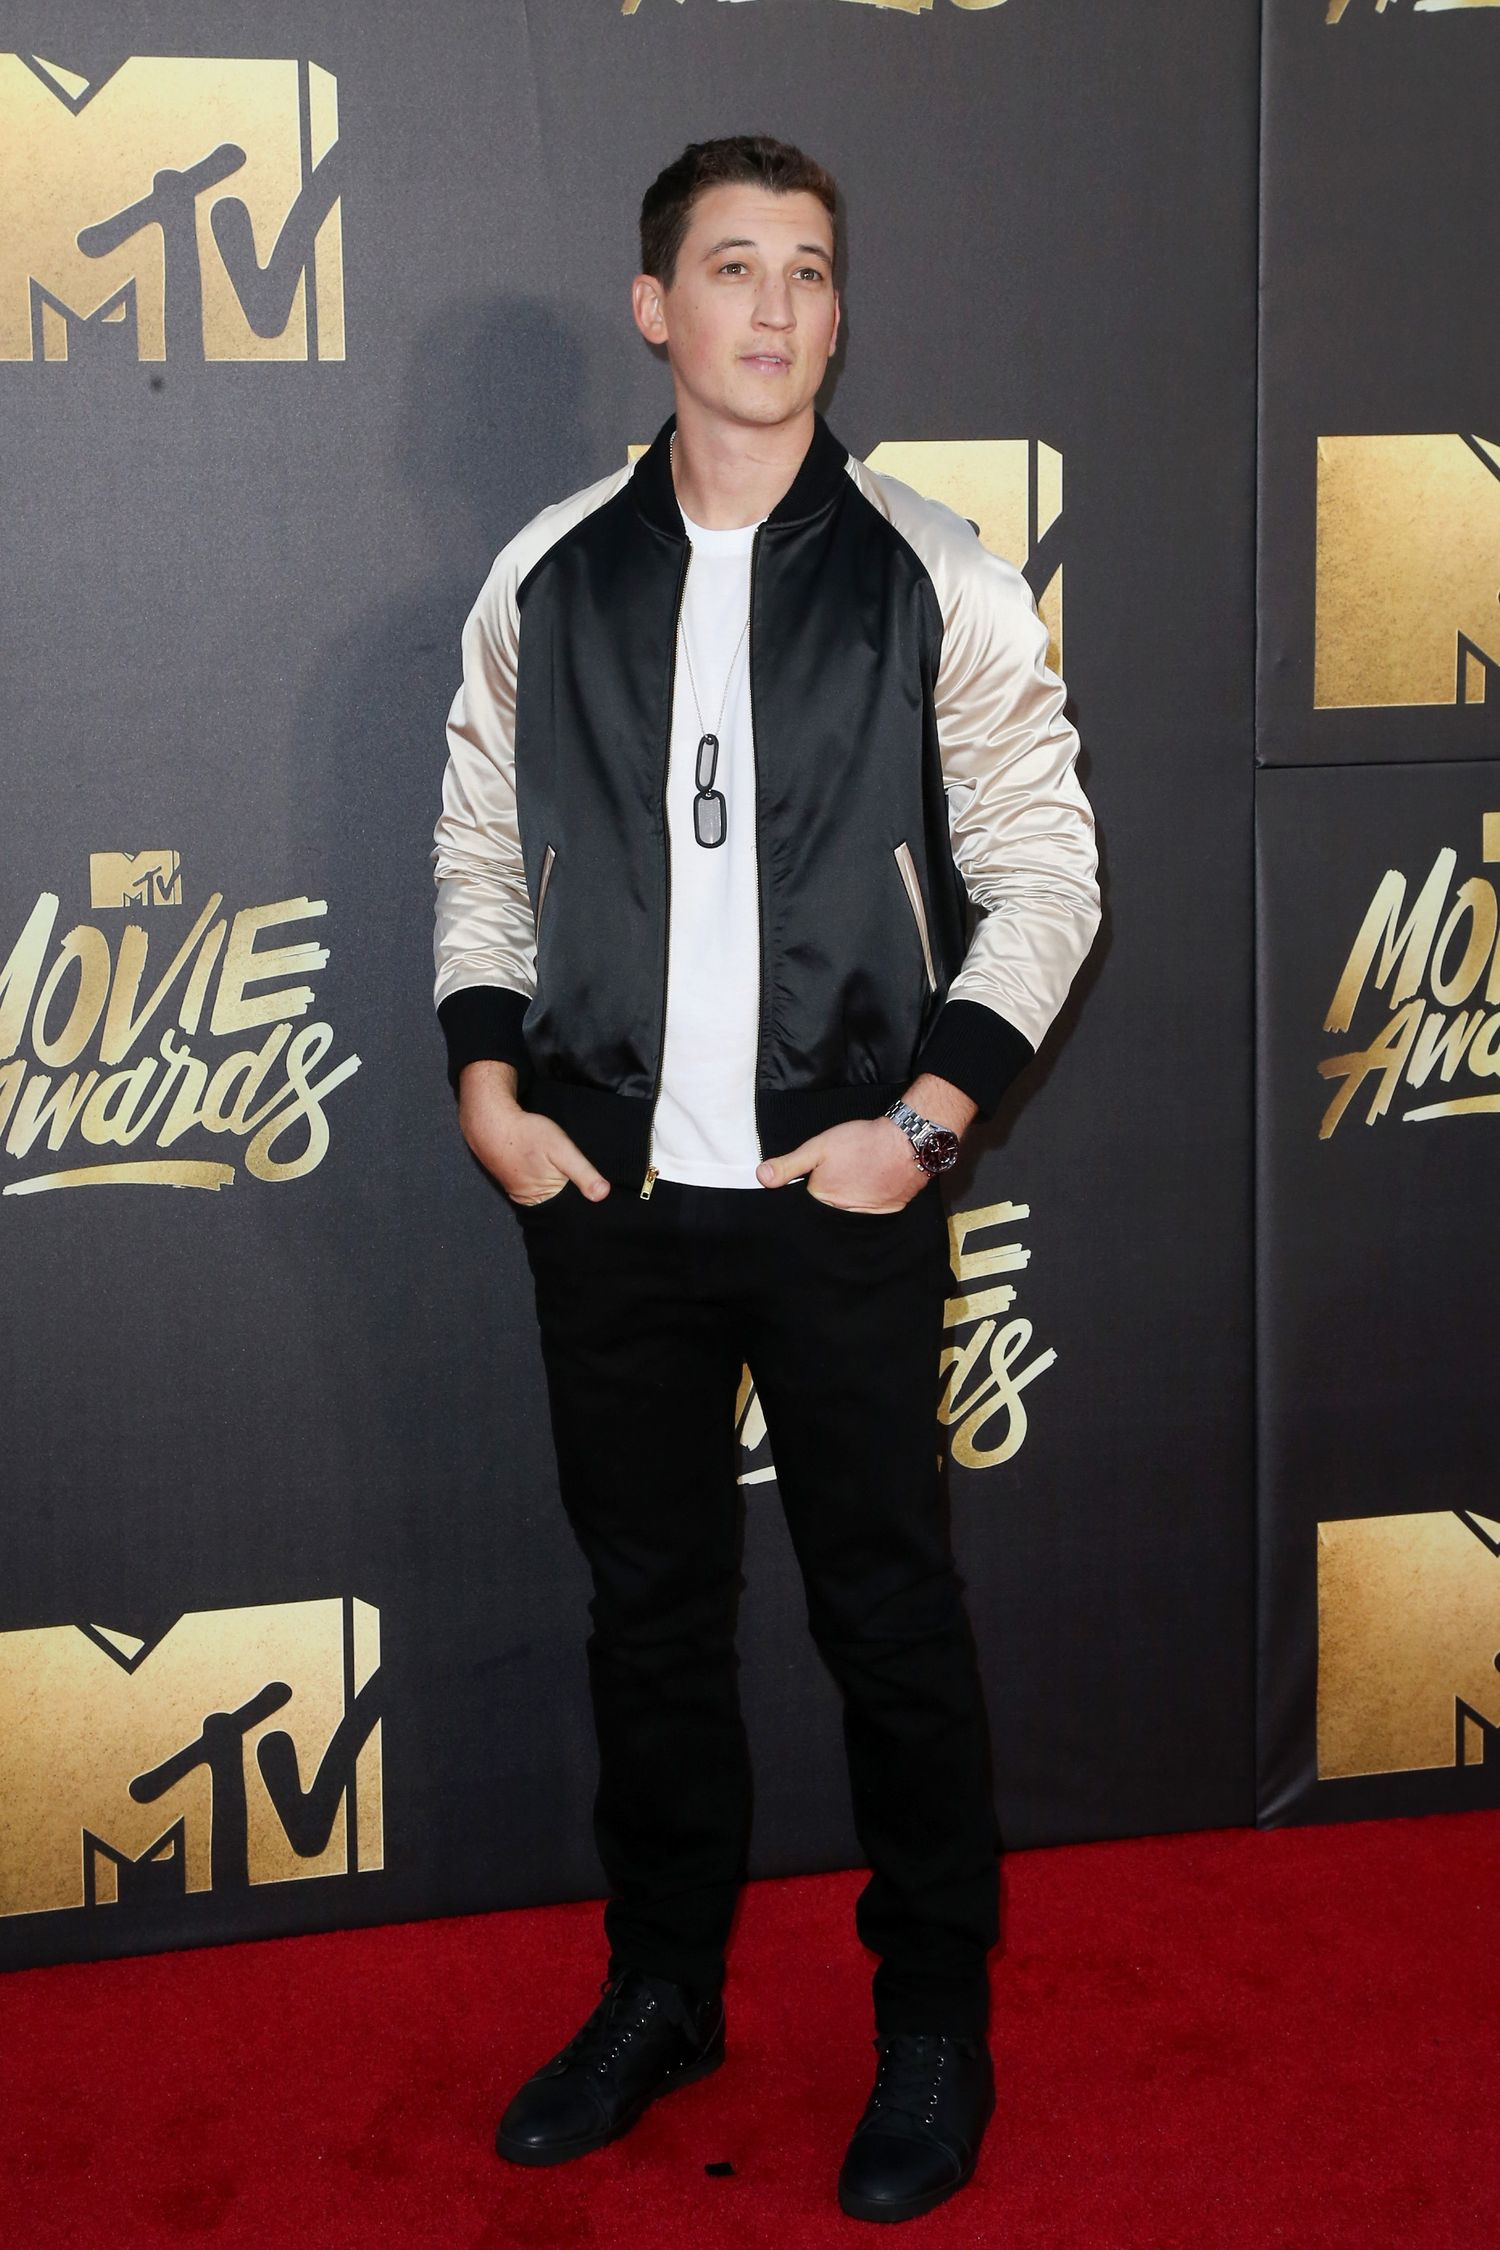 BURBANK, CALIFORNIA - APRIL 09: Actor Miles Teller attends the 2016 MTV Movie Awards at Warner Bros. Studios on April 9, 2016 in Burbank, California. MTV Movie Awards airs April 10, 2016 at 8pm ET/PT. (Photo by Frederick M. Brown/Getty Images)